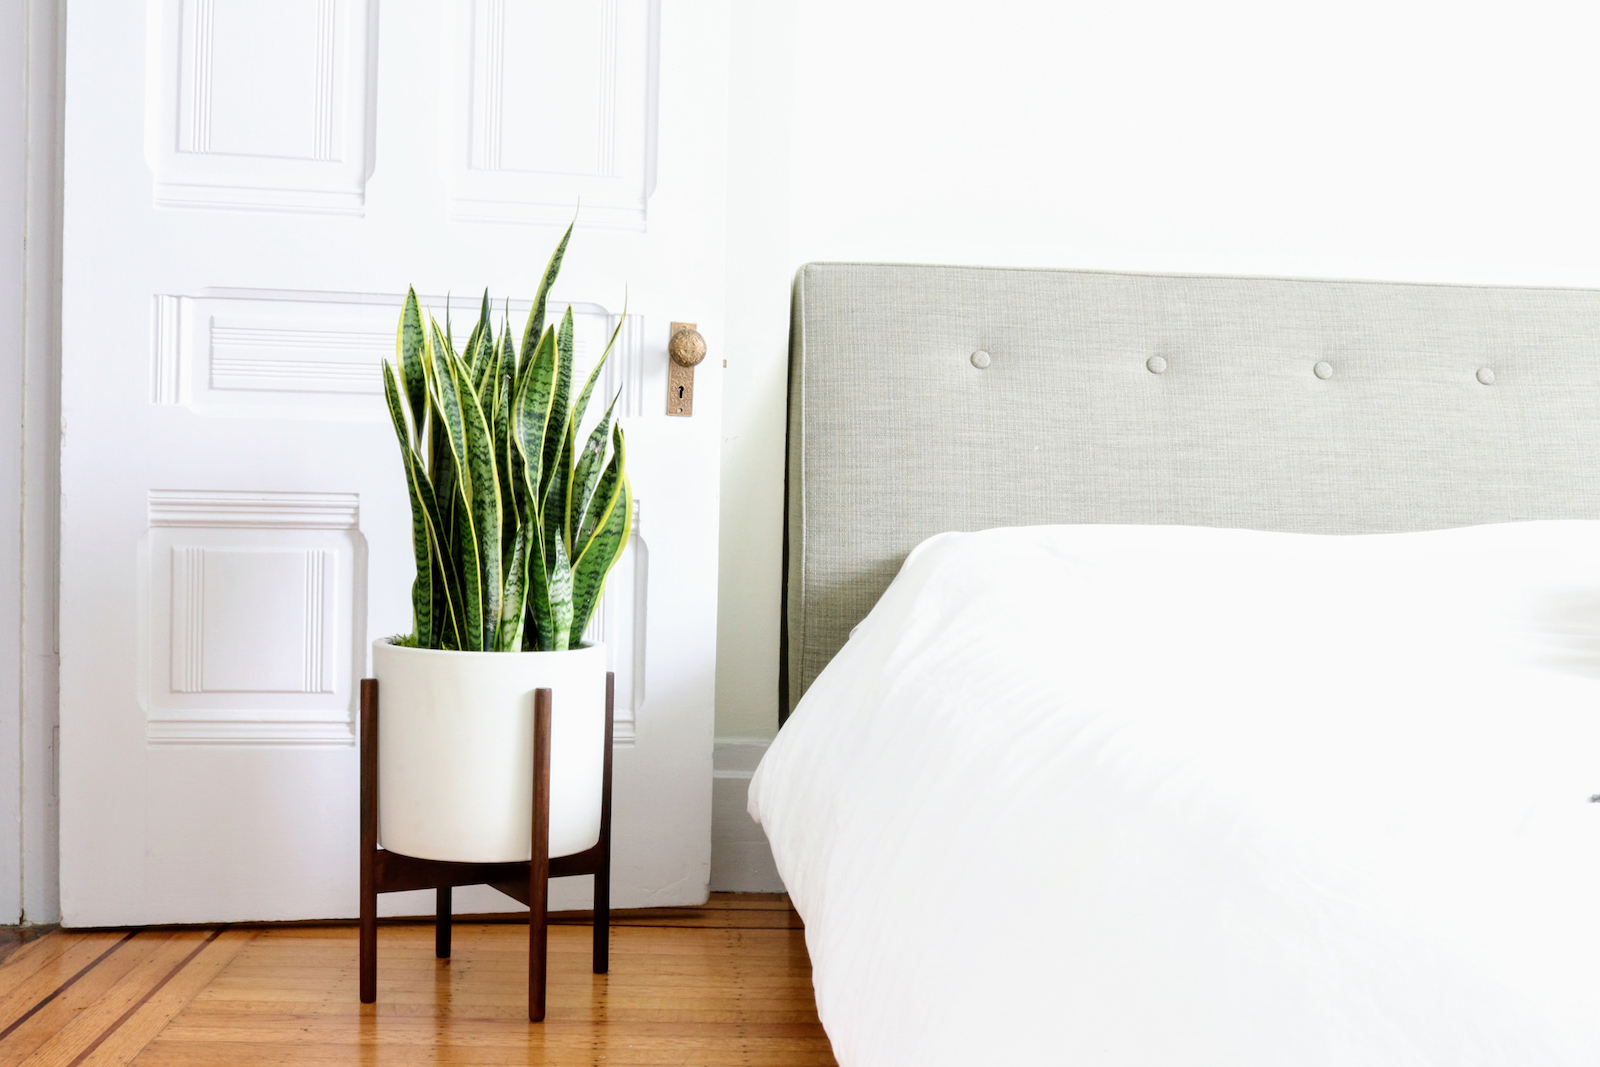 Thanks to its air-purifying qualities, the Snake Plant is the best plant for bedrooms.